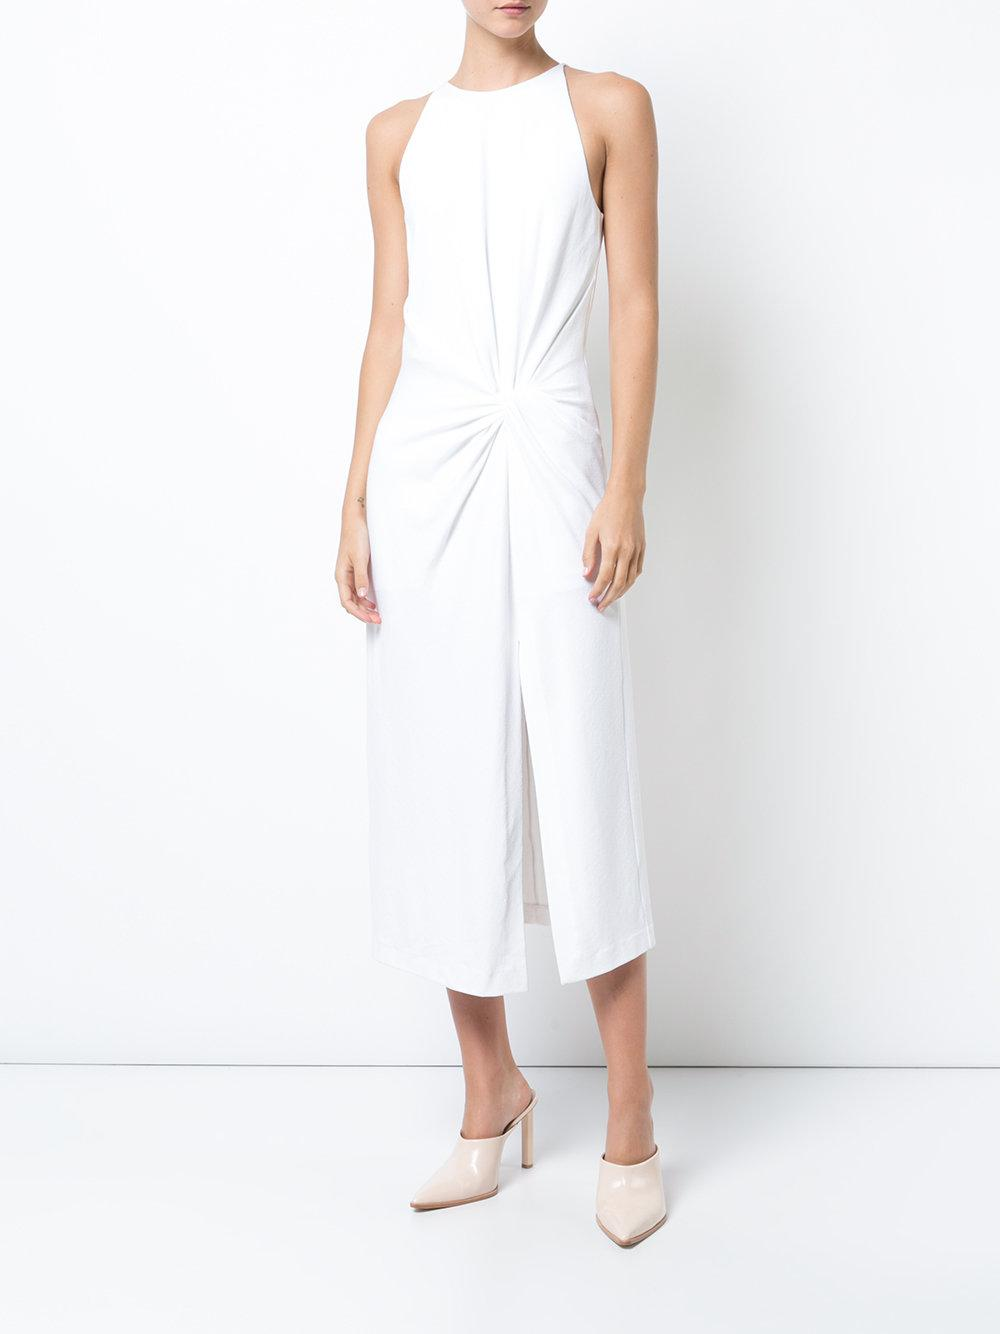 Lyst - Dion Lee Side Twist Tank Dress in White 6edc0230b